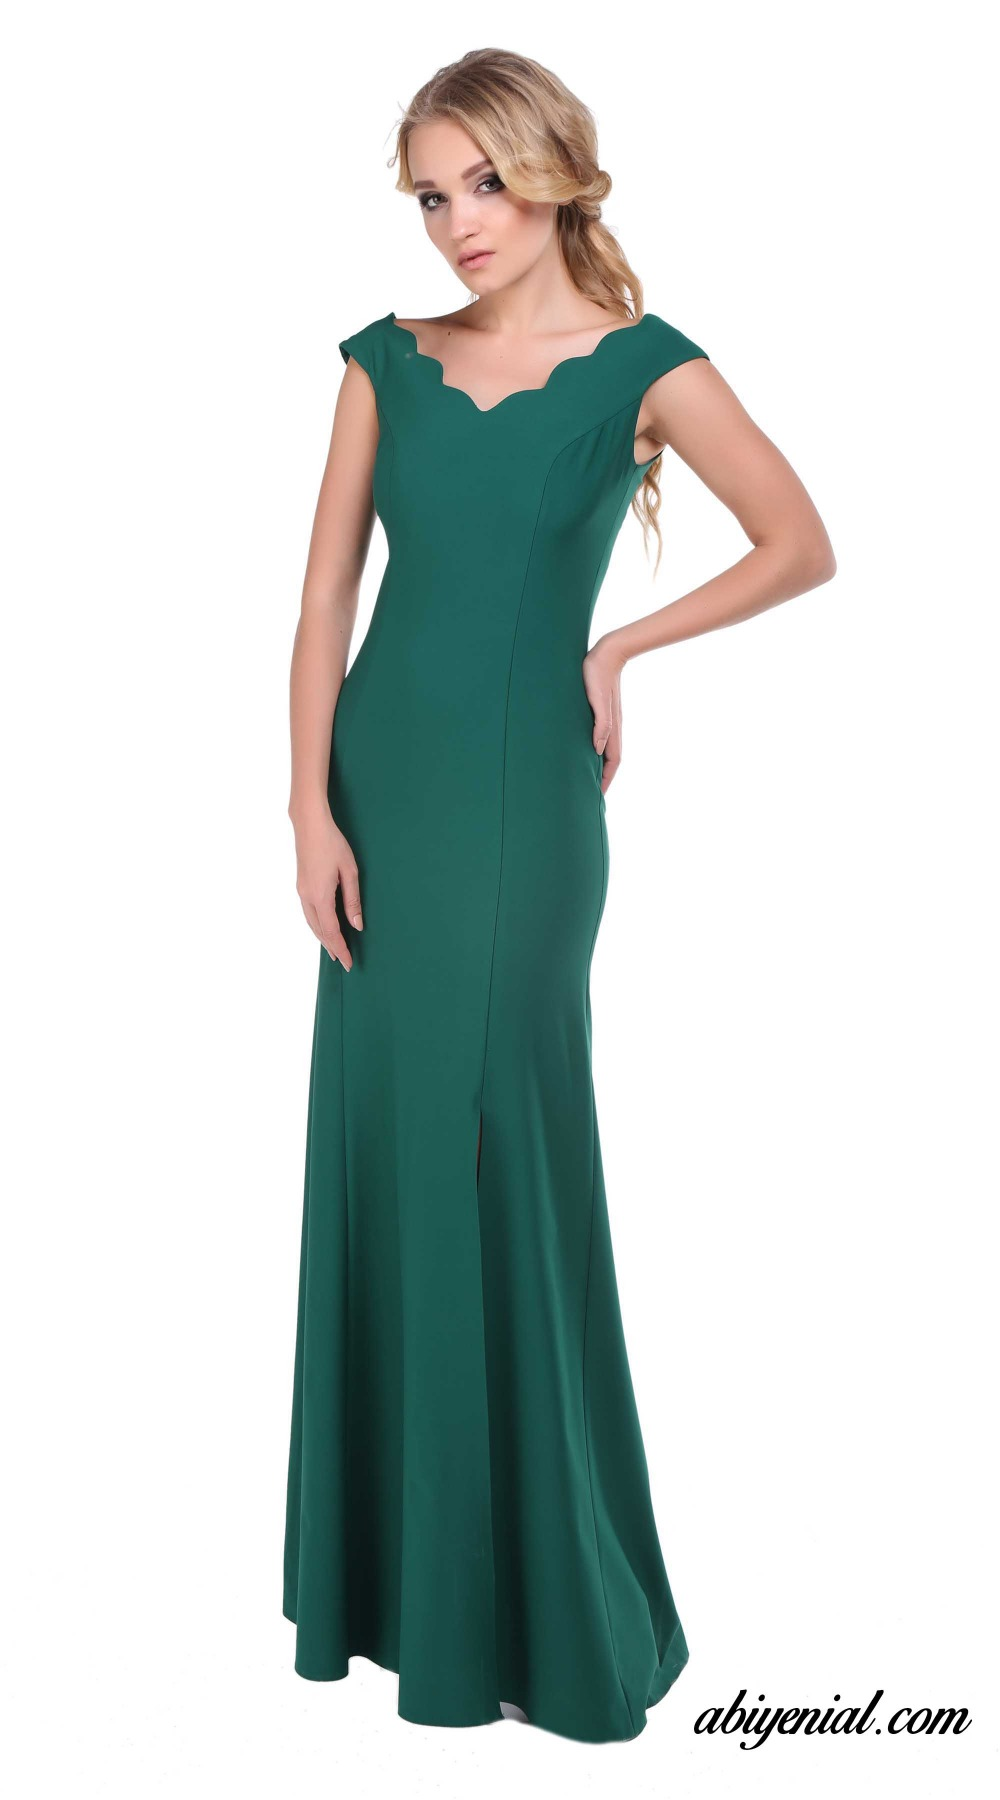 BAM1018 Stunning Design 2016 Party Prom Gown with Seductive Side ...